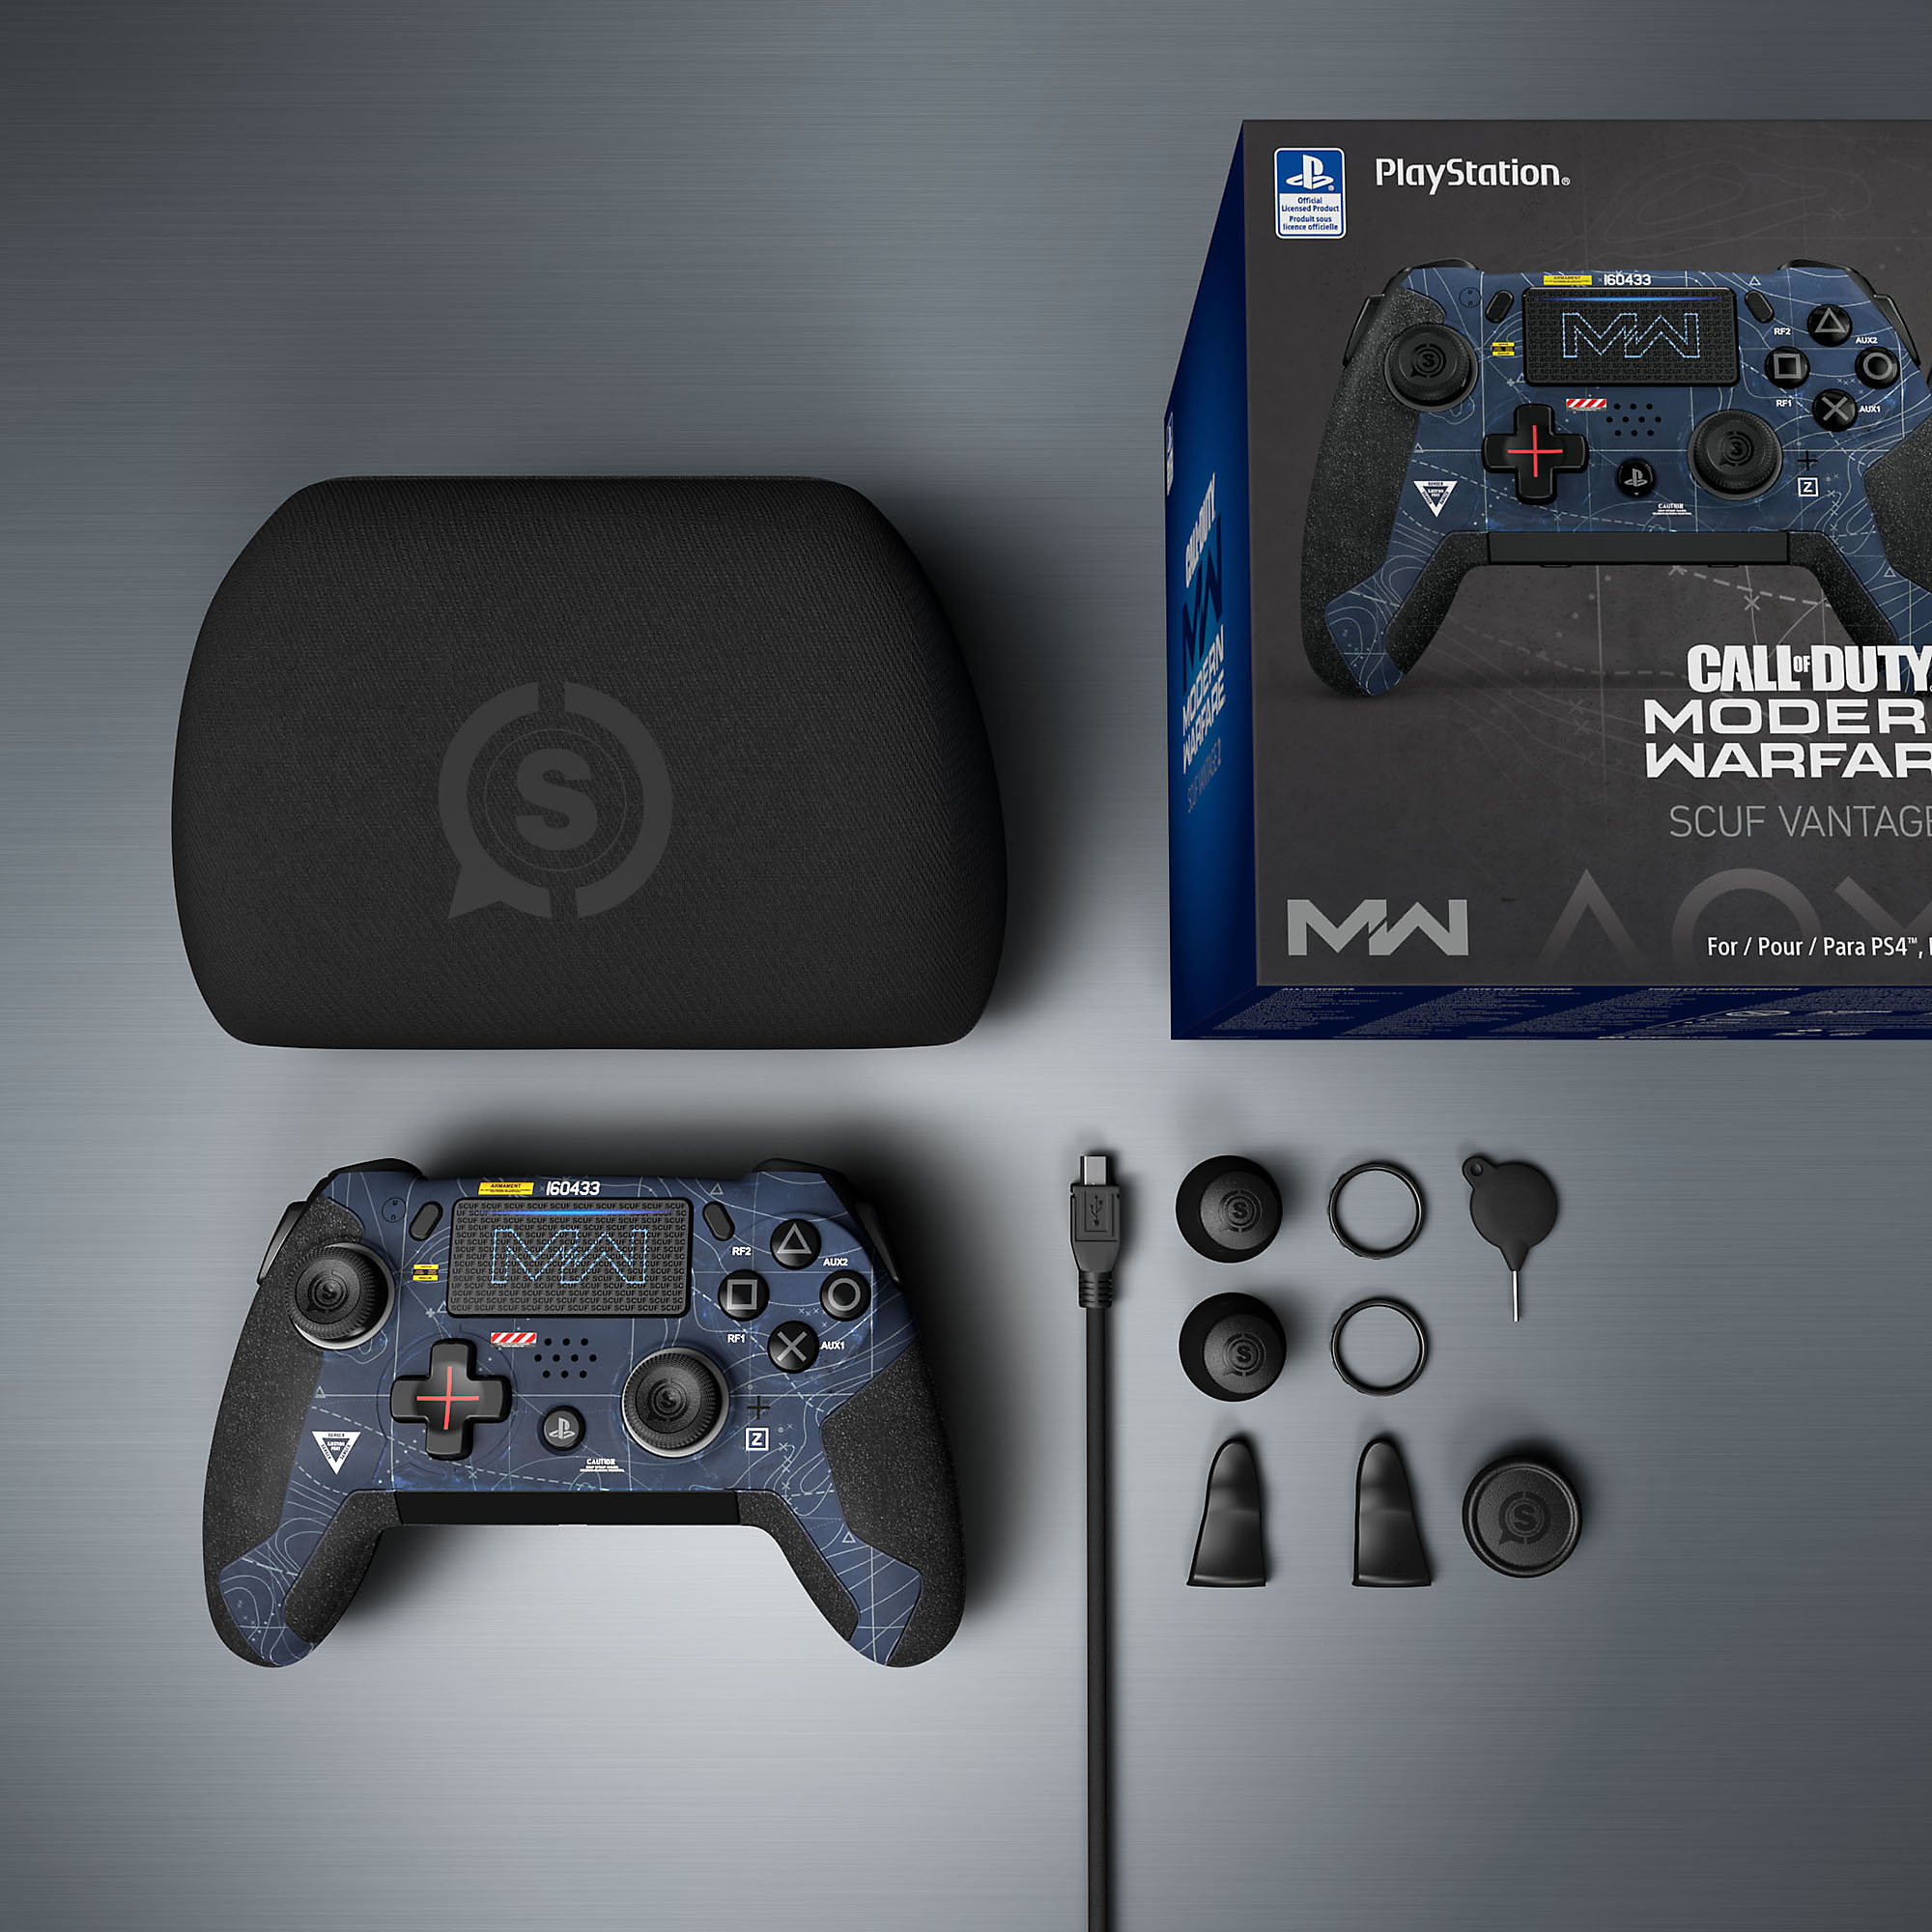 SCUF Vantage Modern Warfare Limited Edition Product Shot 1